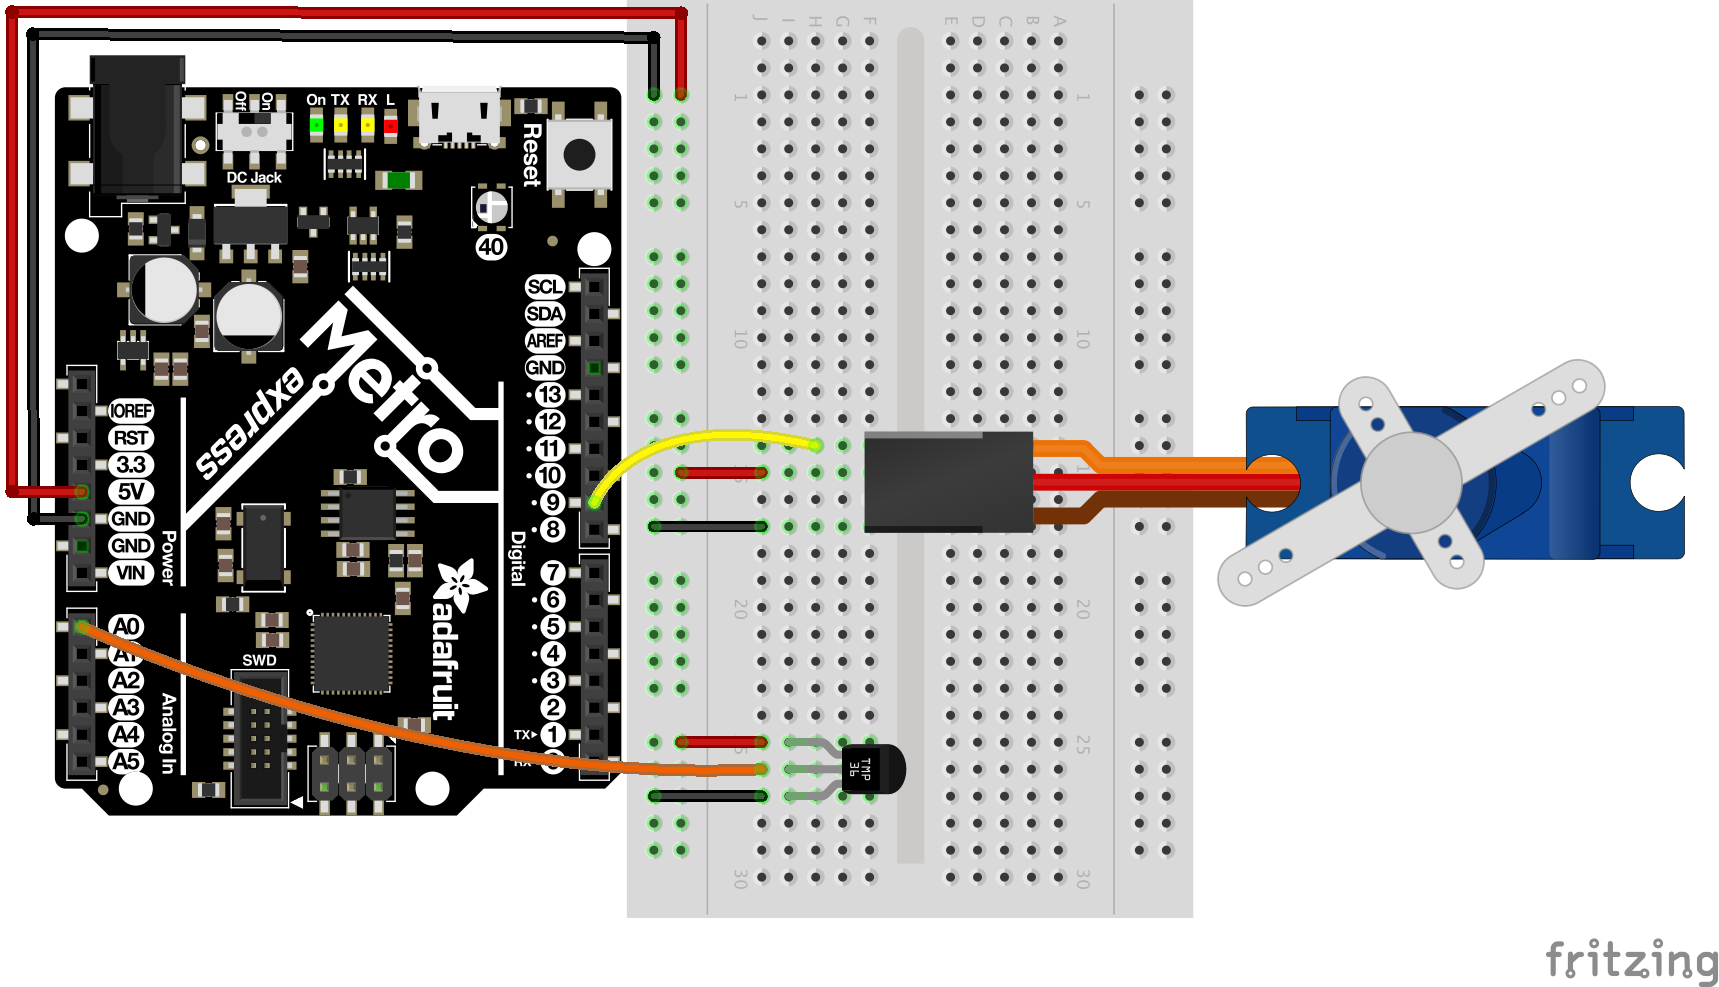 adafruit_products_quest05_bb.png